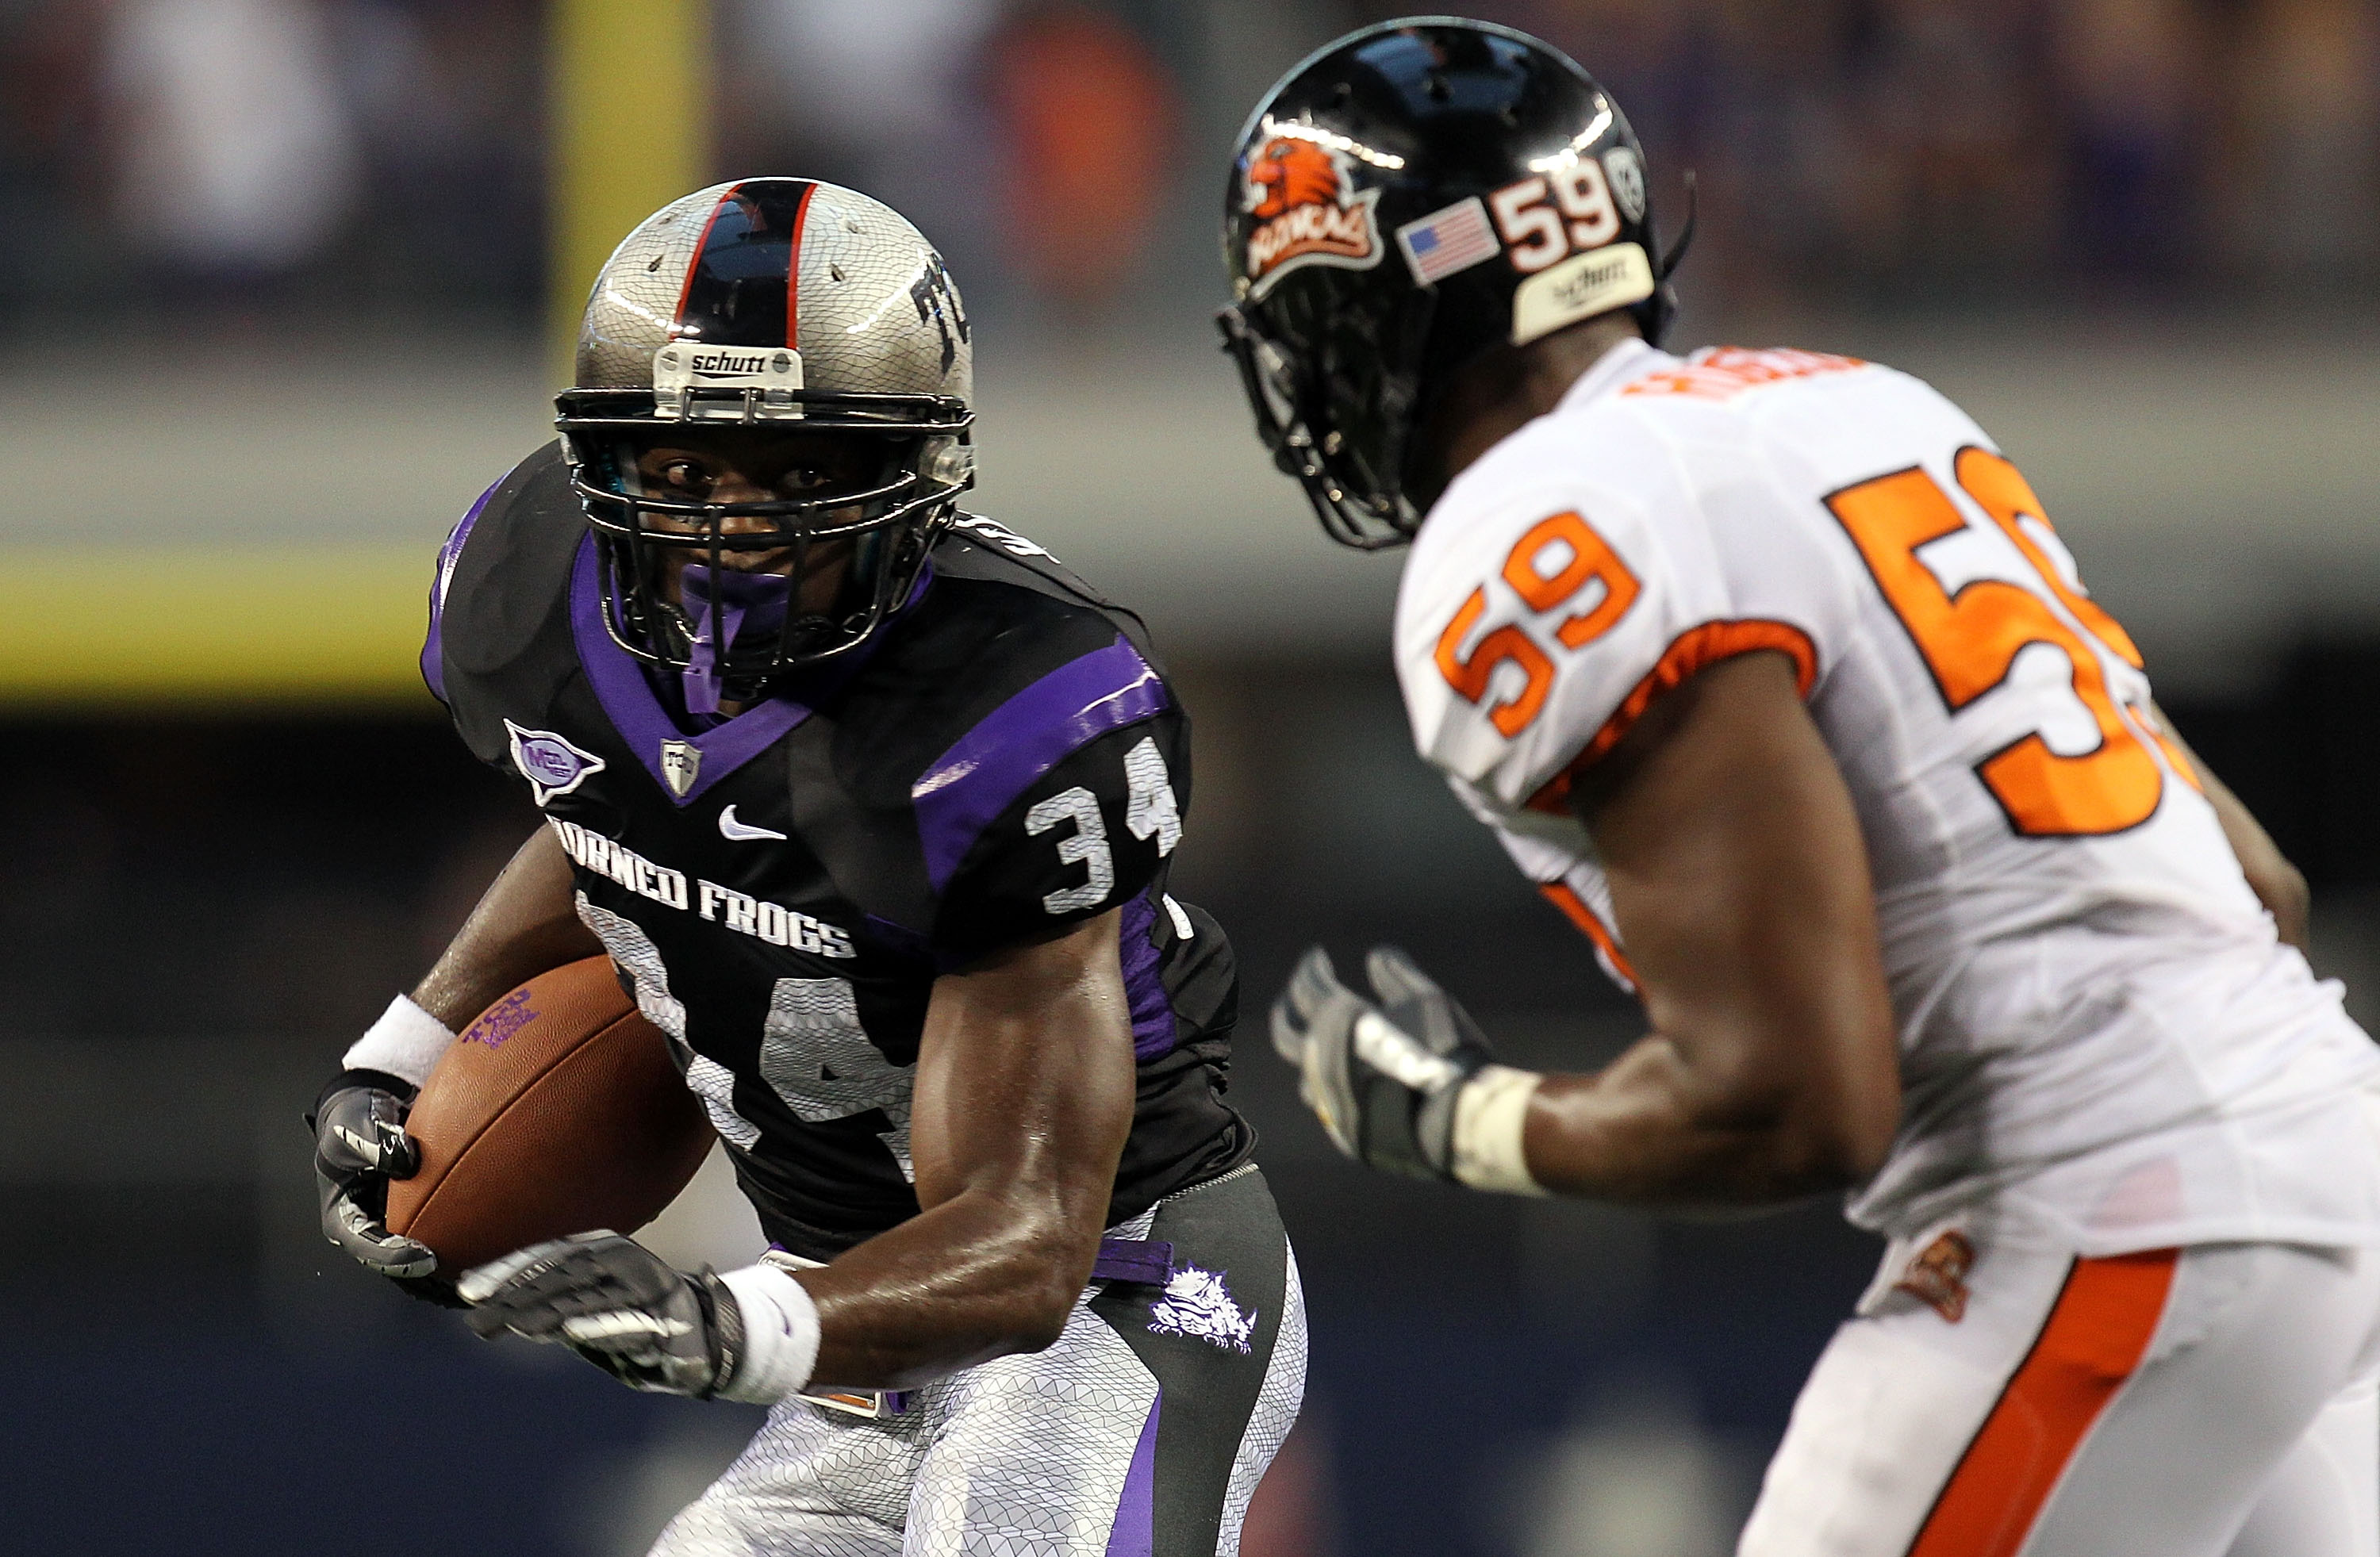 ARLINGTON, TX - SEPTEMBER 04:  Tailback Ed Wesley #34 of the TCU Horned Frogs runs the ball past Dwight Roberson #59 of the Oregon State Beavers at Cowboys Stadium on September 4, 2010 in Arlington, Texas.  (Photo by Ronald Martinez/Getty Images)